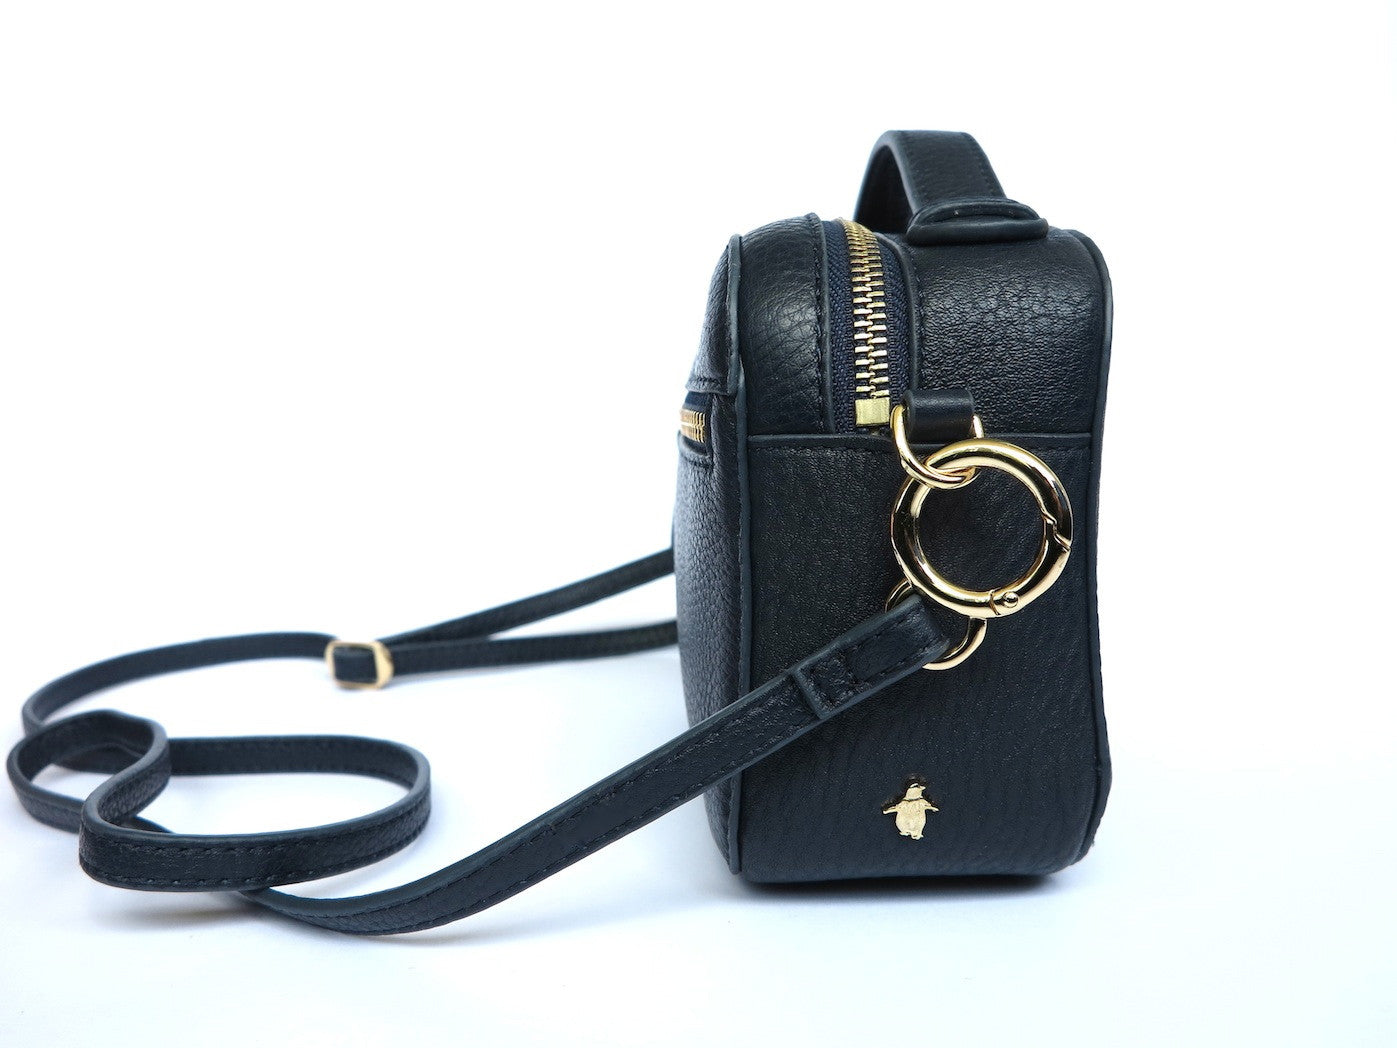 Peregrine Crossbody Bag - Midnight Blue - PEDRO'S BLUFF - New Zealand Leather Bags & Accessories